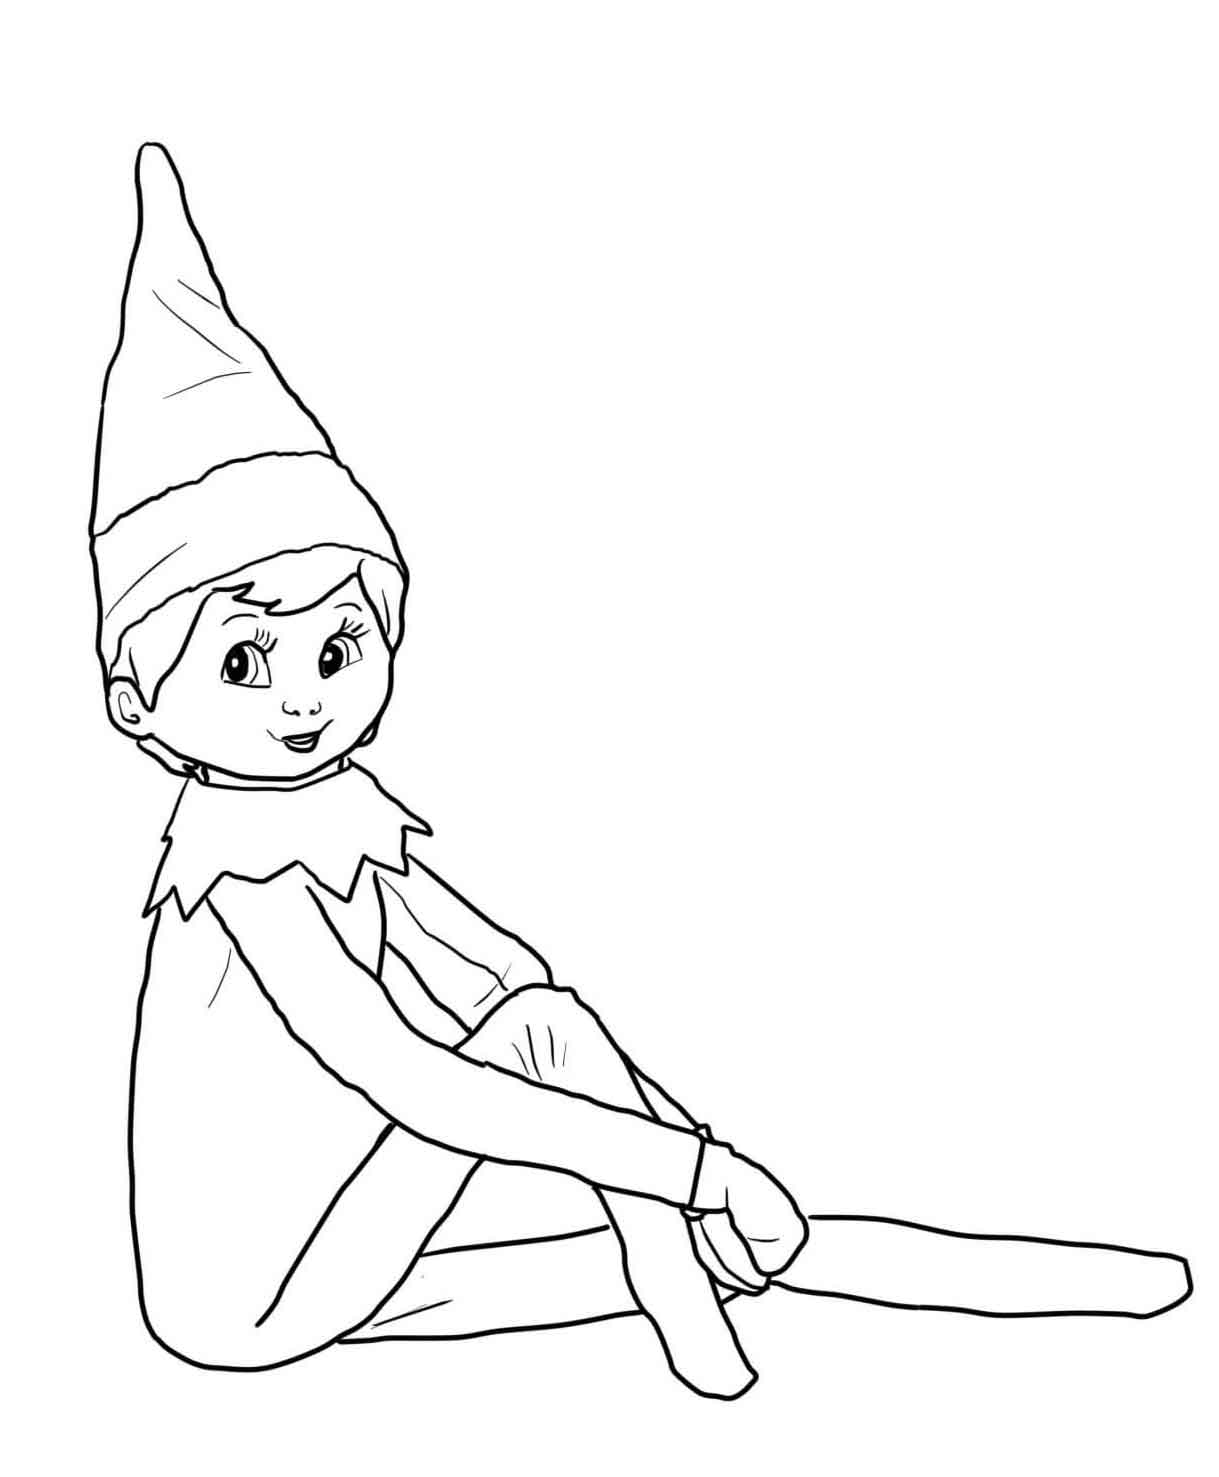 elf on the shelf coloring book holidays archives 101 coloring elf shelf the coloring book on